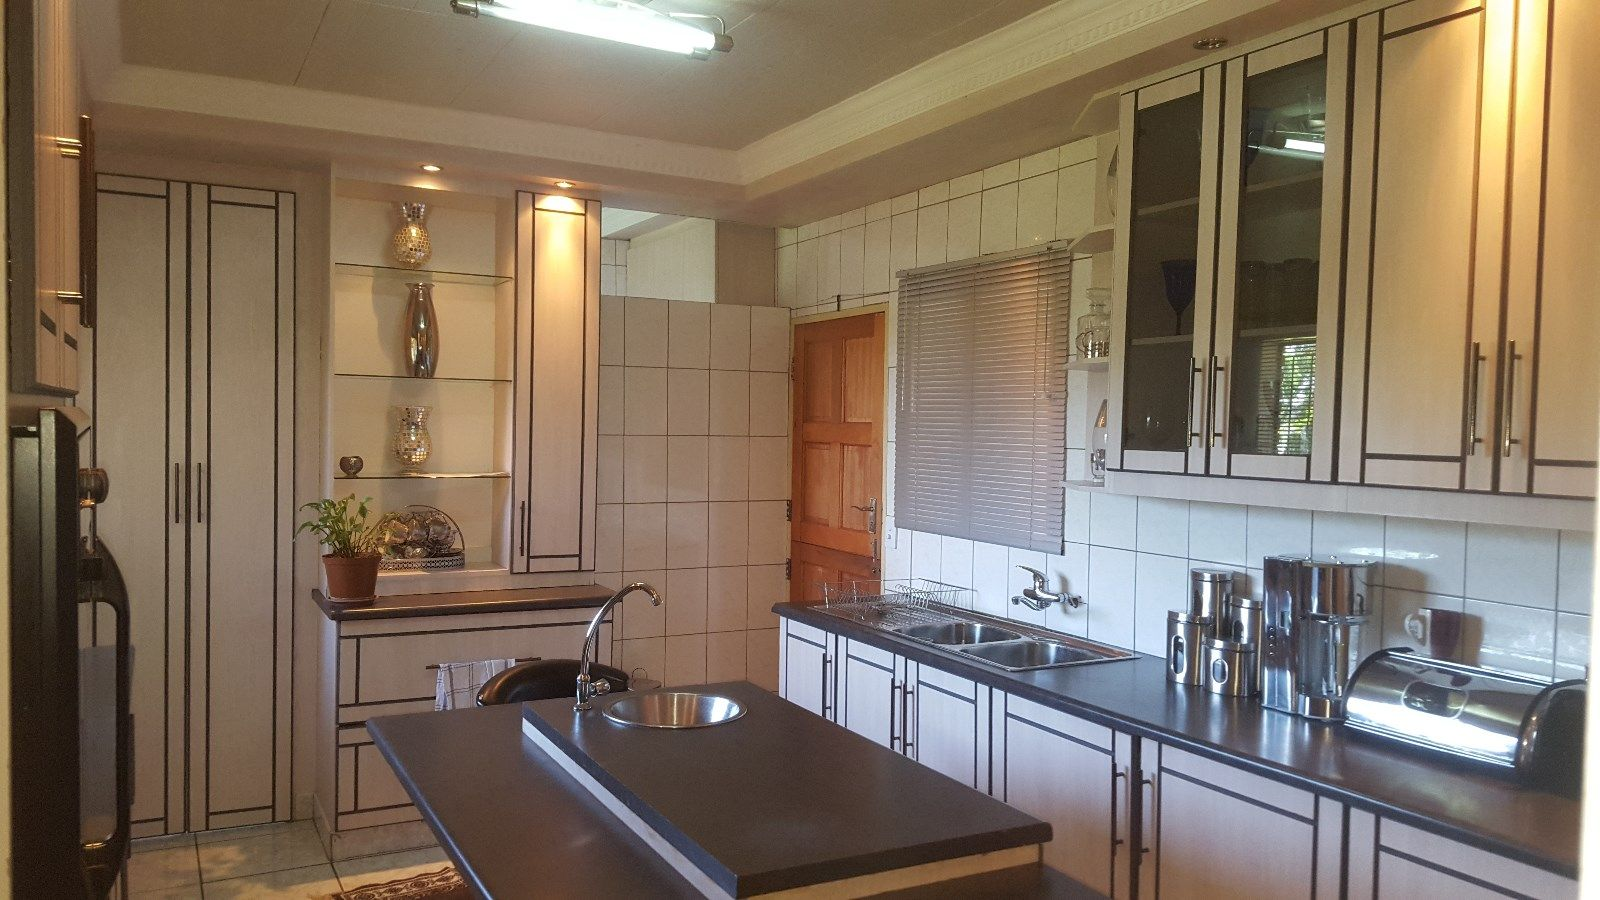 Potchefstroom Central for sale property. Ref No: 13451730. Picture no 5